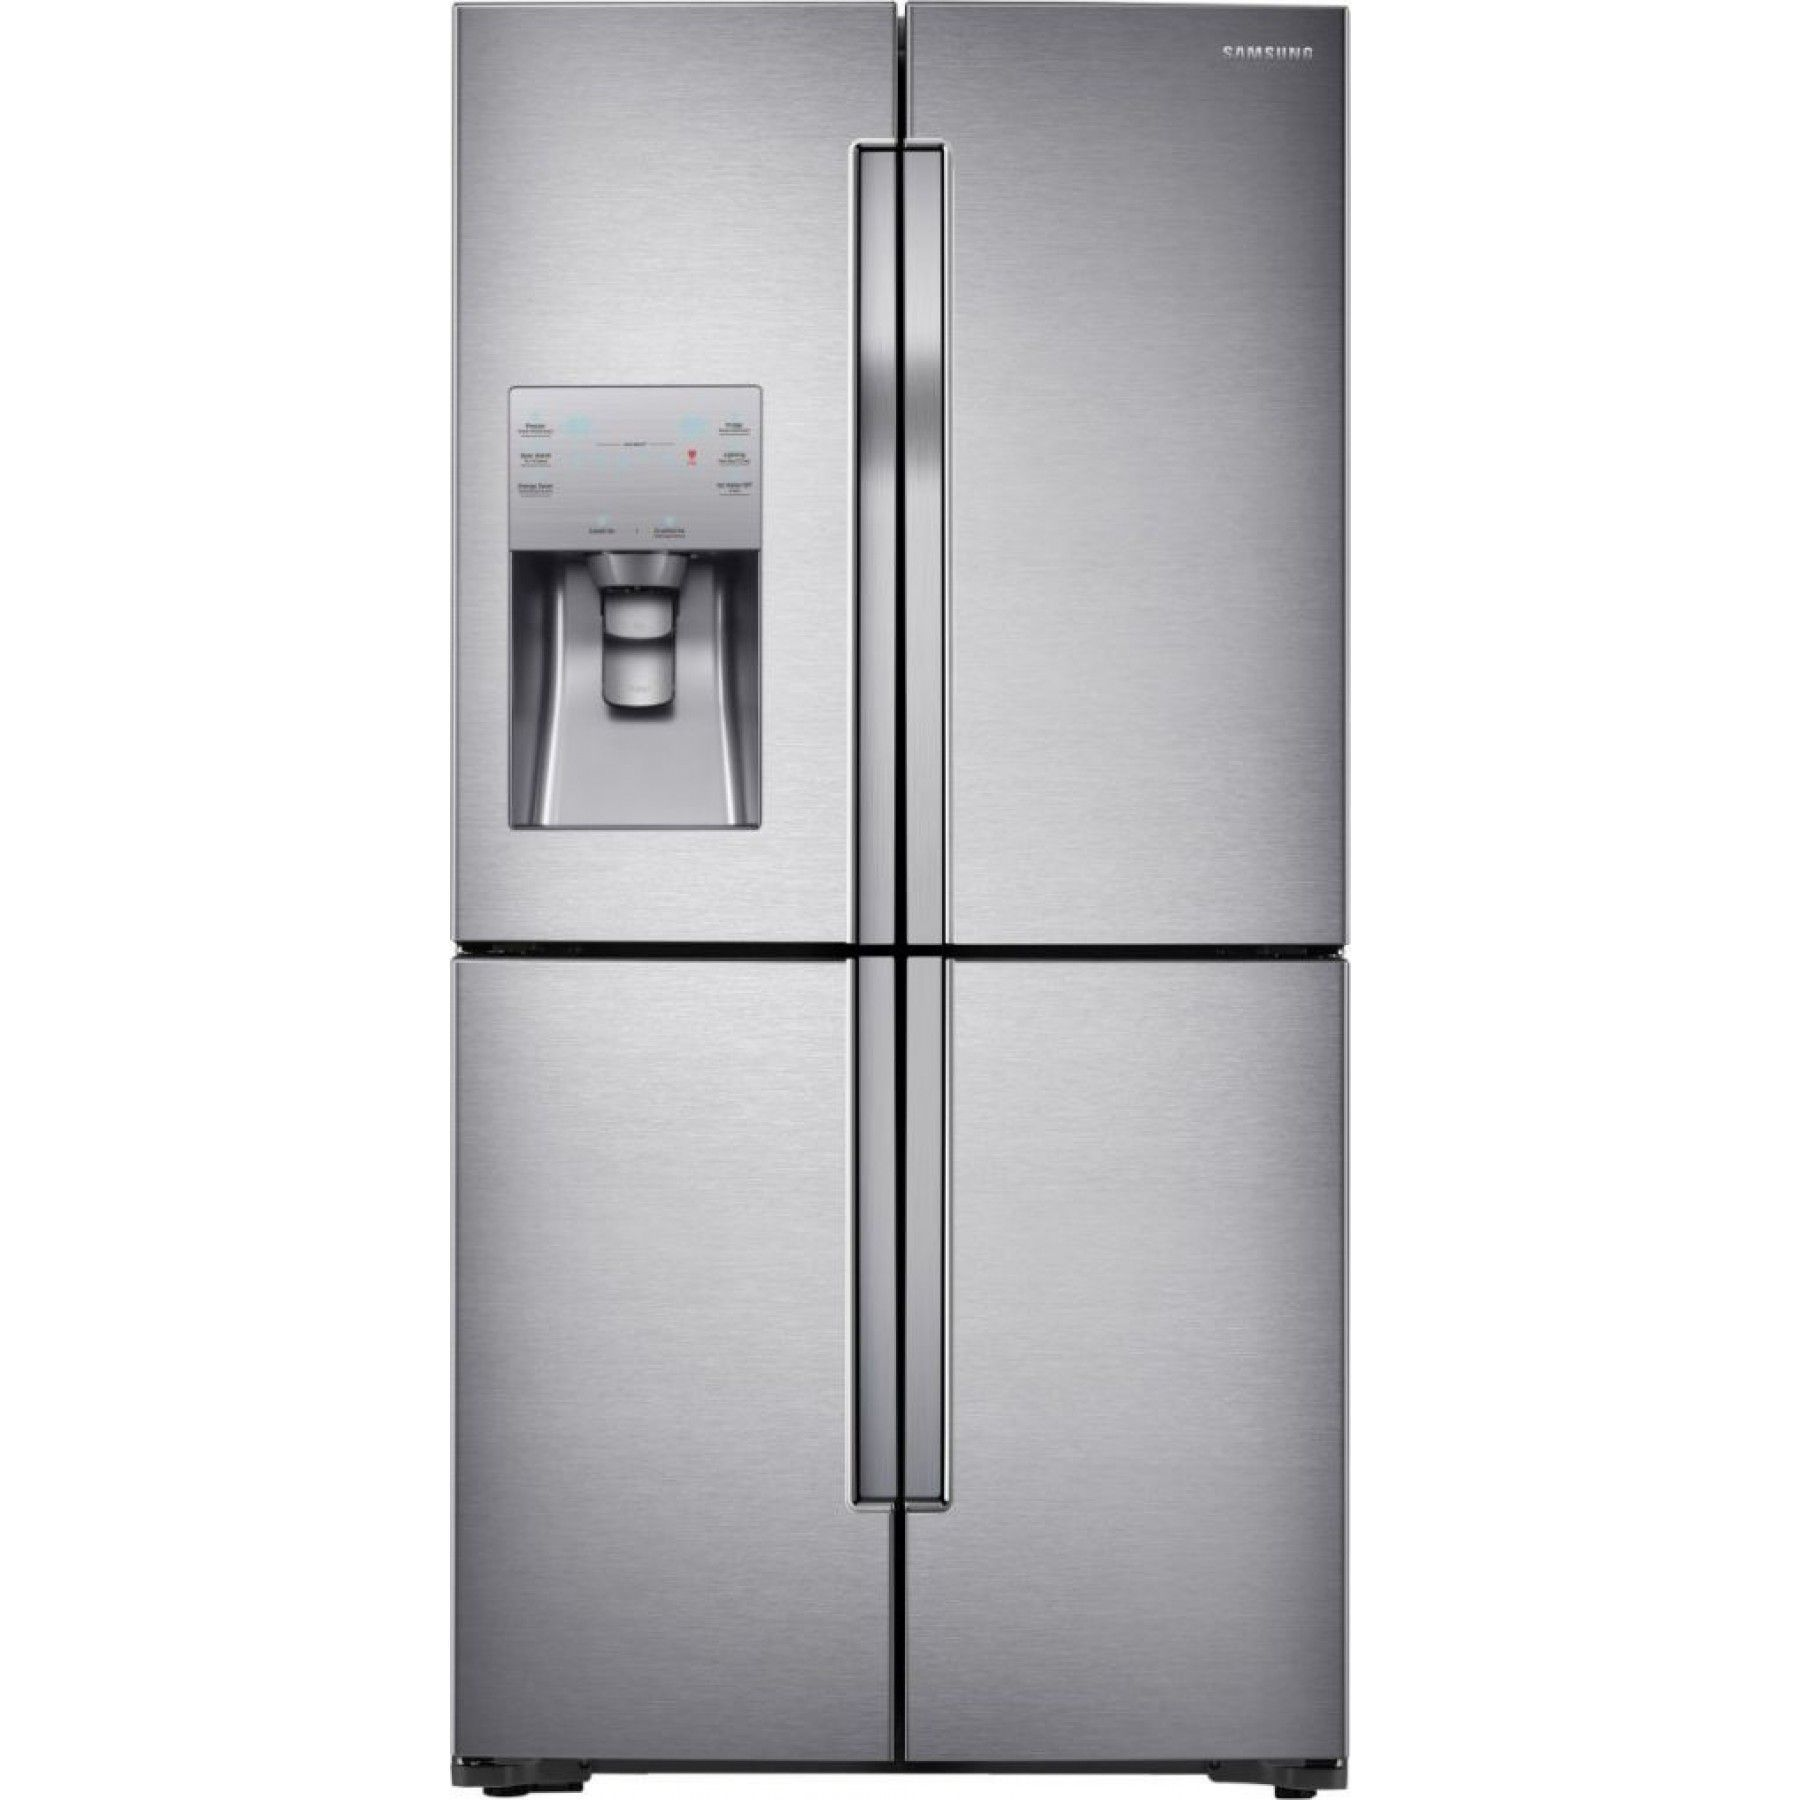 What Is A Counter Depth Refrigerator Counter Depth Refrigerators Ideas Pinterest Refrigerator Counter Depth Refrigerator And Counter Depth